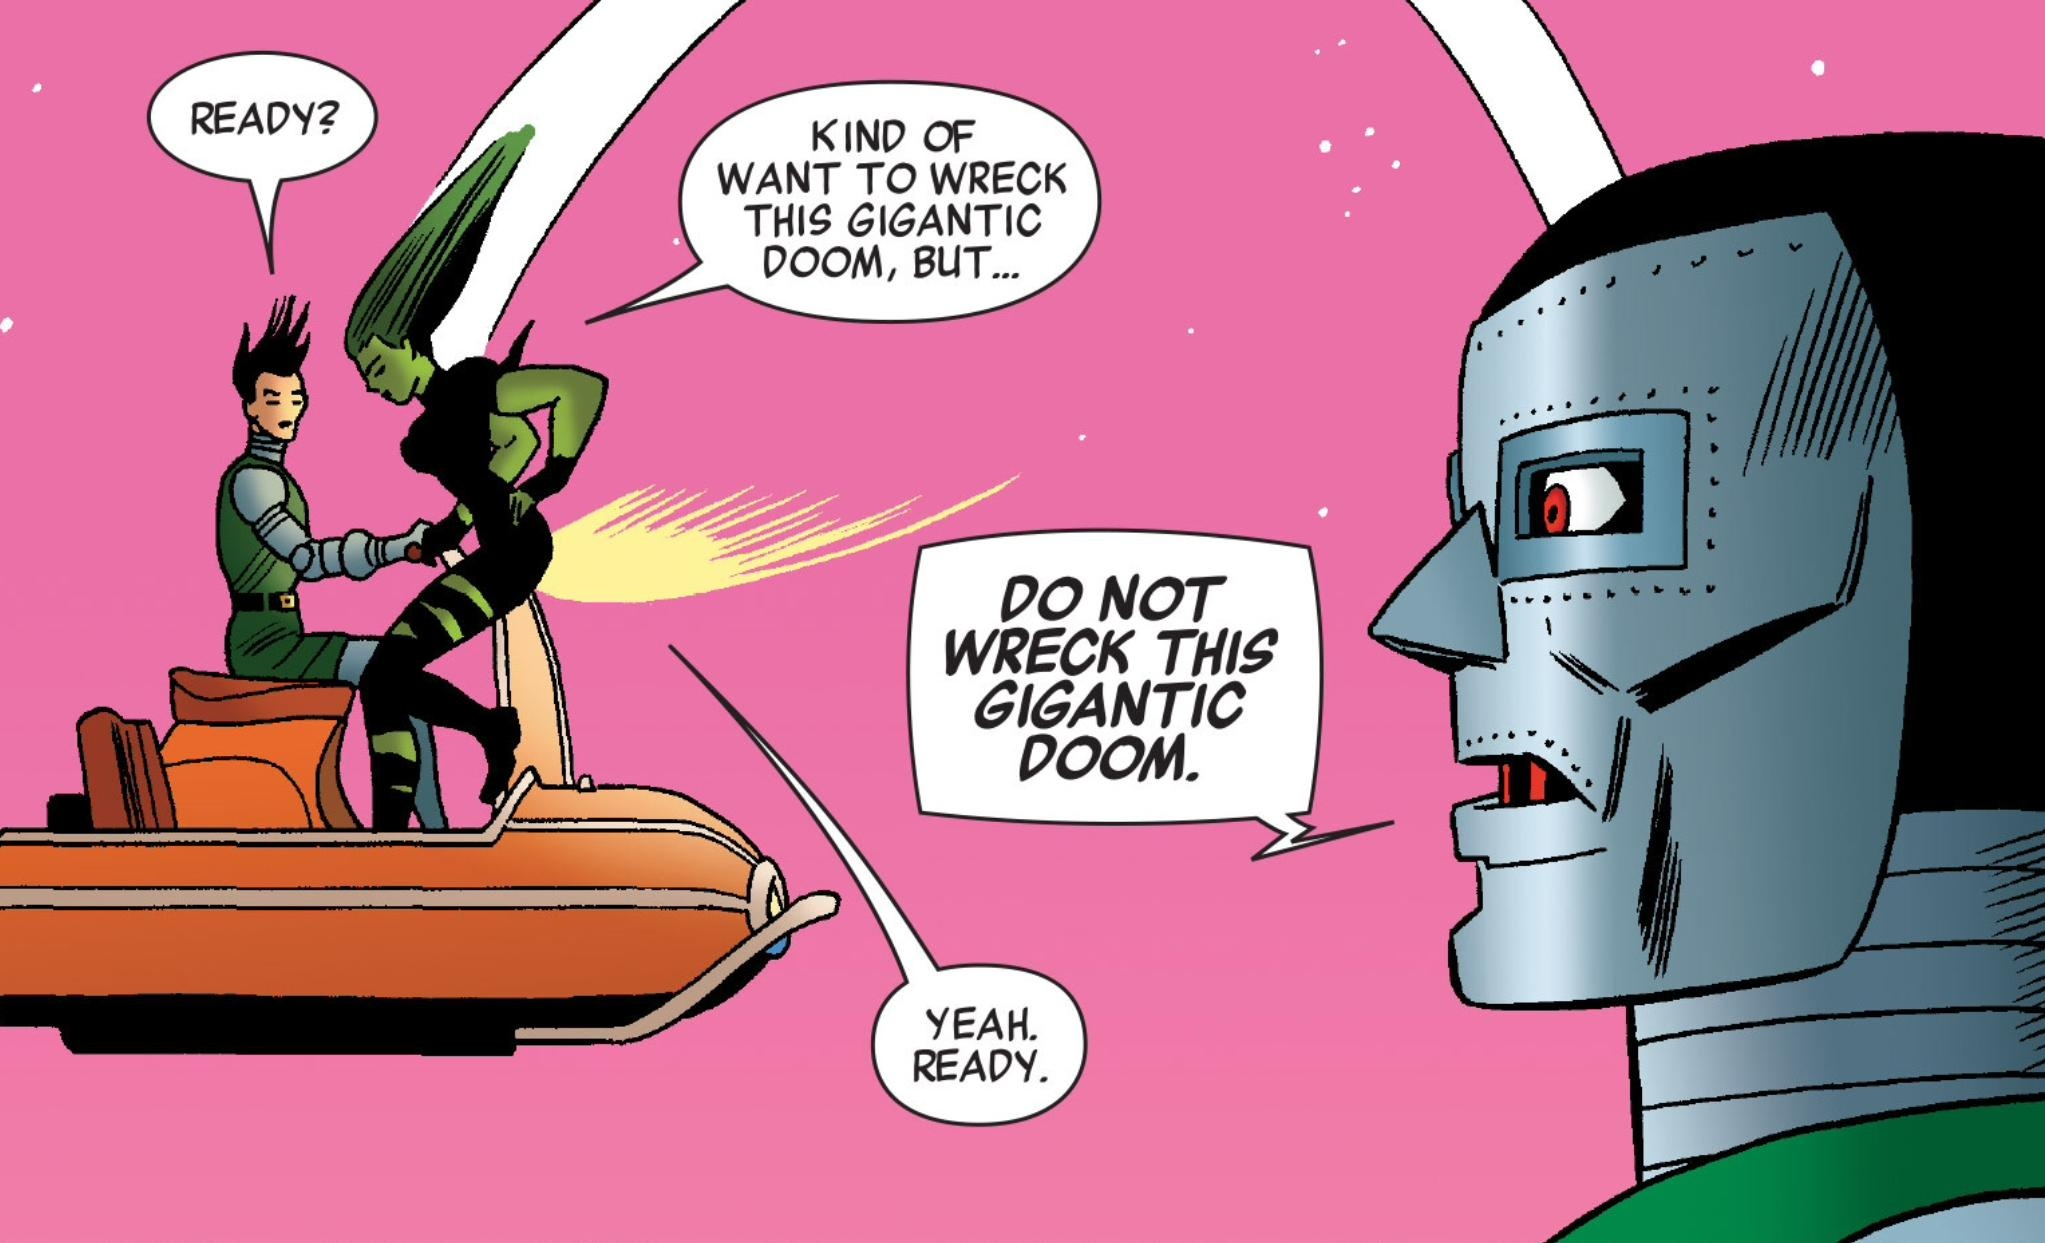 She-Hulk and the Gigantic Doombot